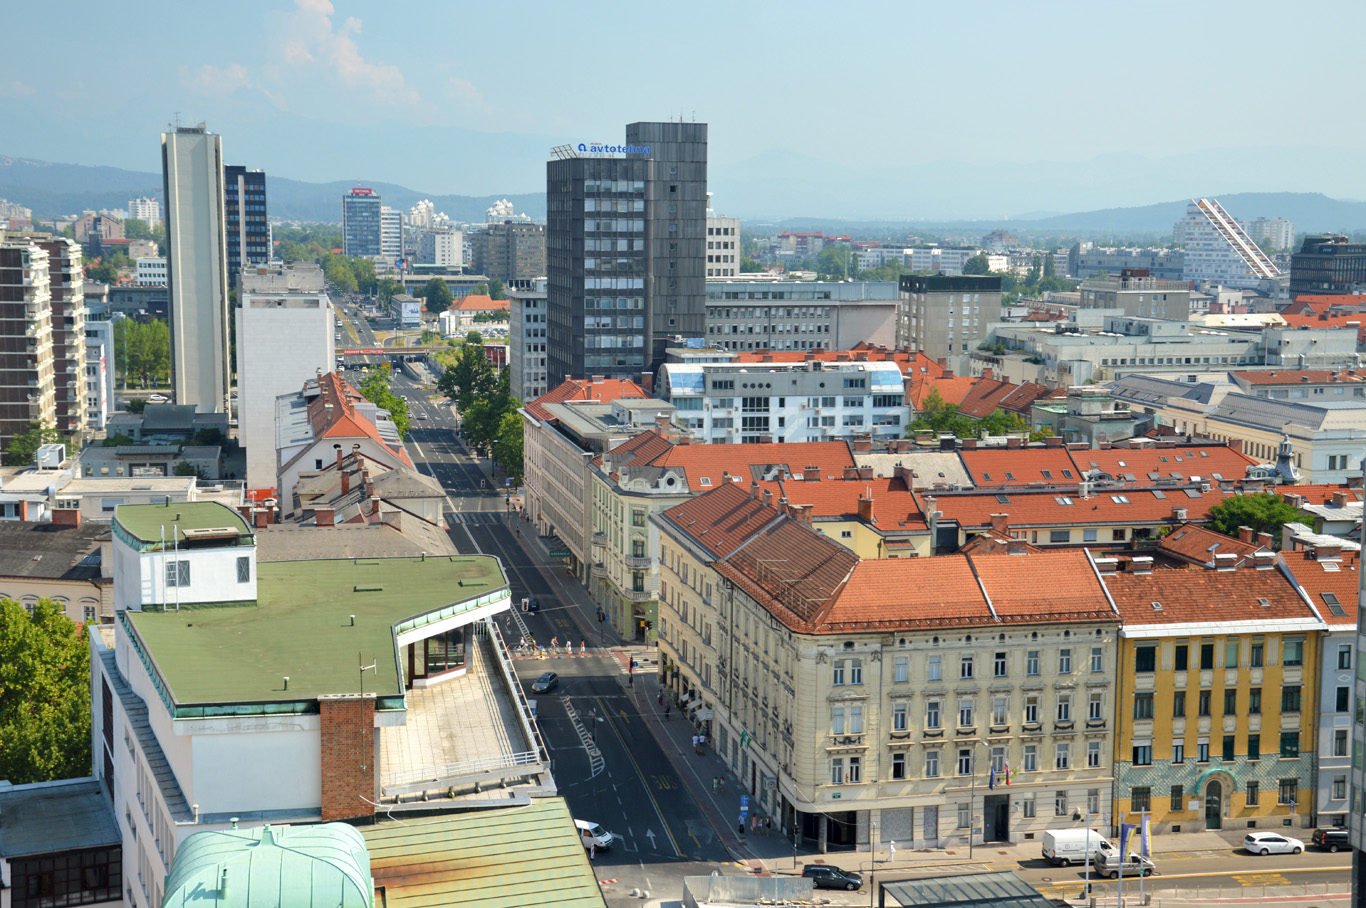 The communist architecture - view from Neboticnik